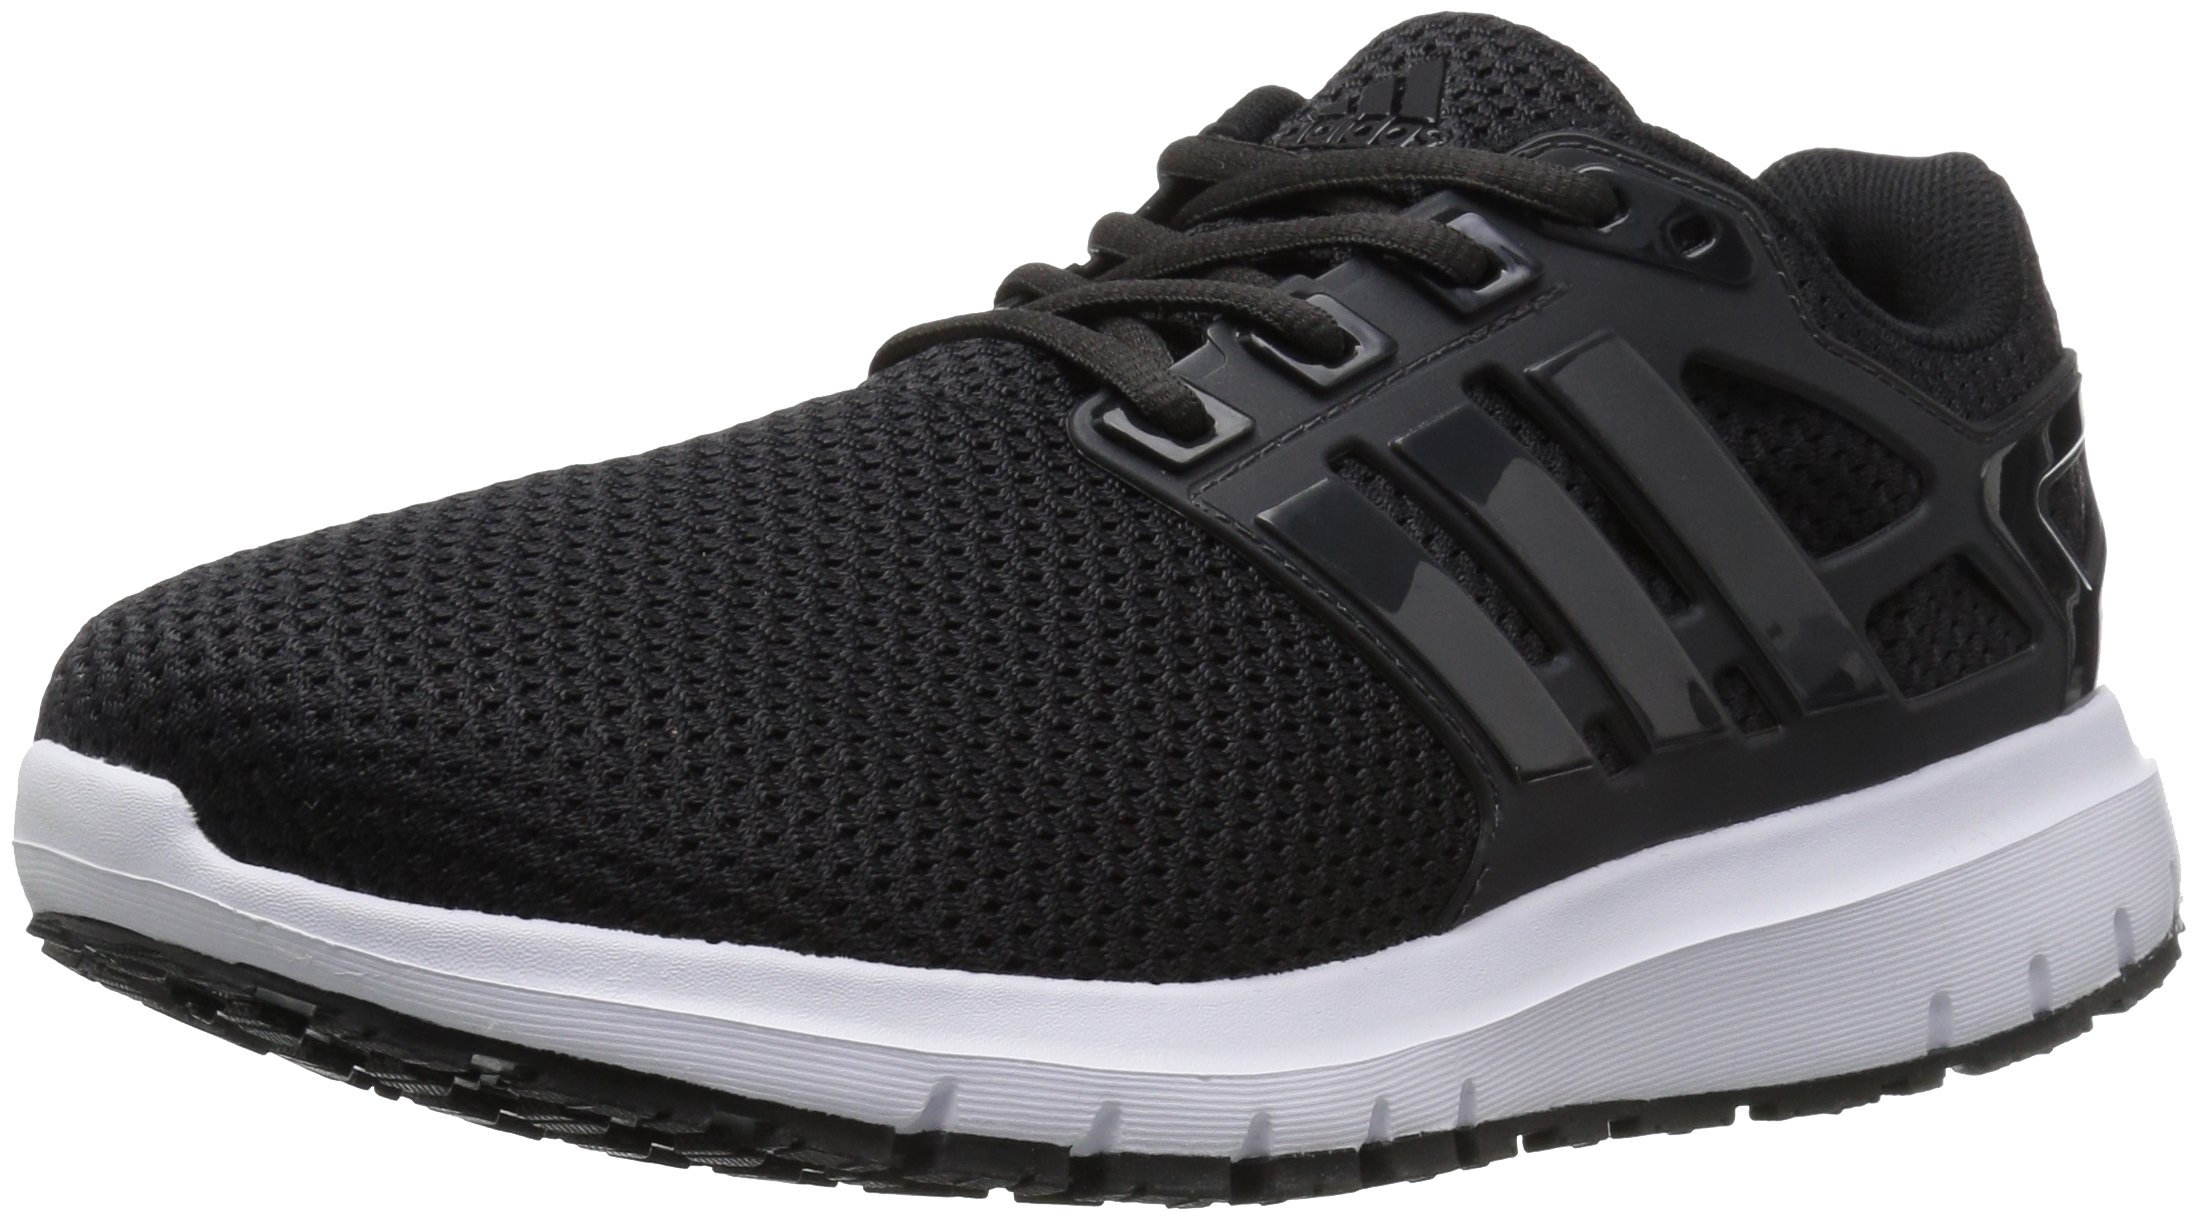 adidas  Men's Energy Cloud Wide m Running Shoe, BLACK/UTILITY BLACK/WHITE, 10.5 2E US